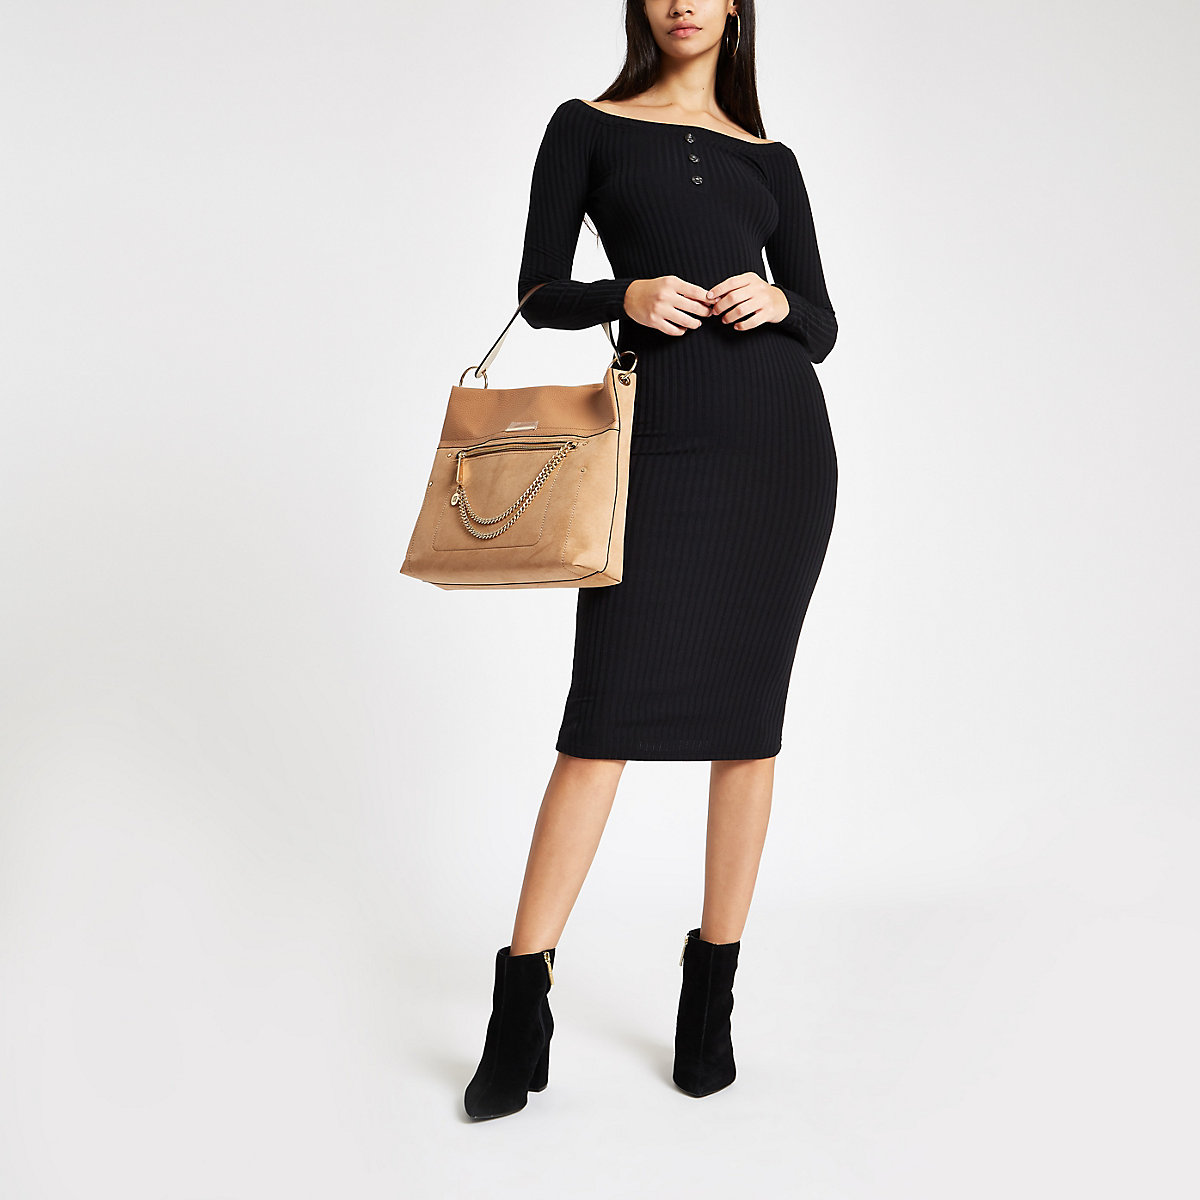 Black scoop neck ribbed bodycon midi dress